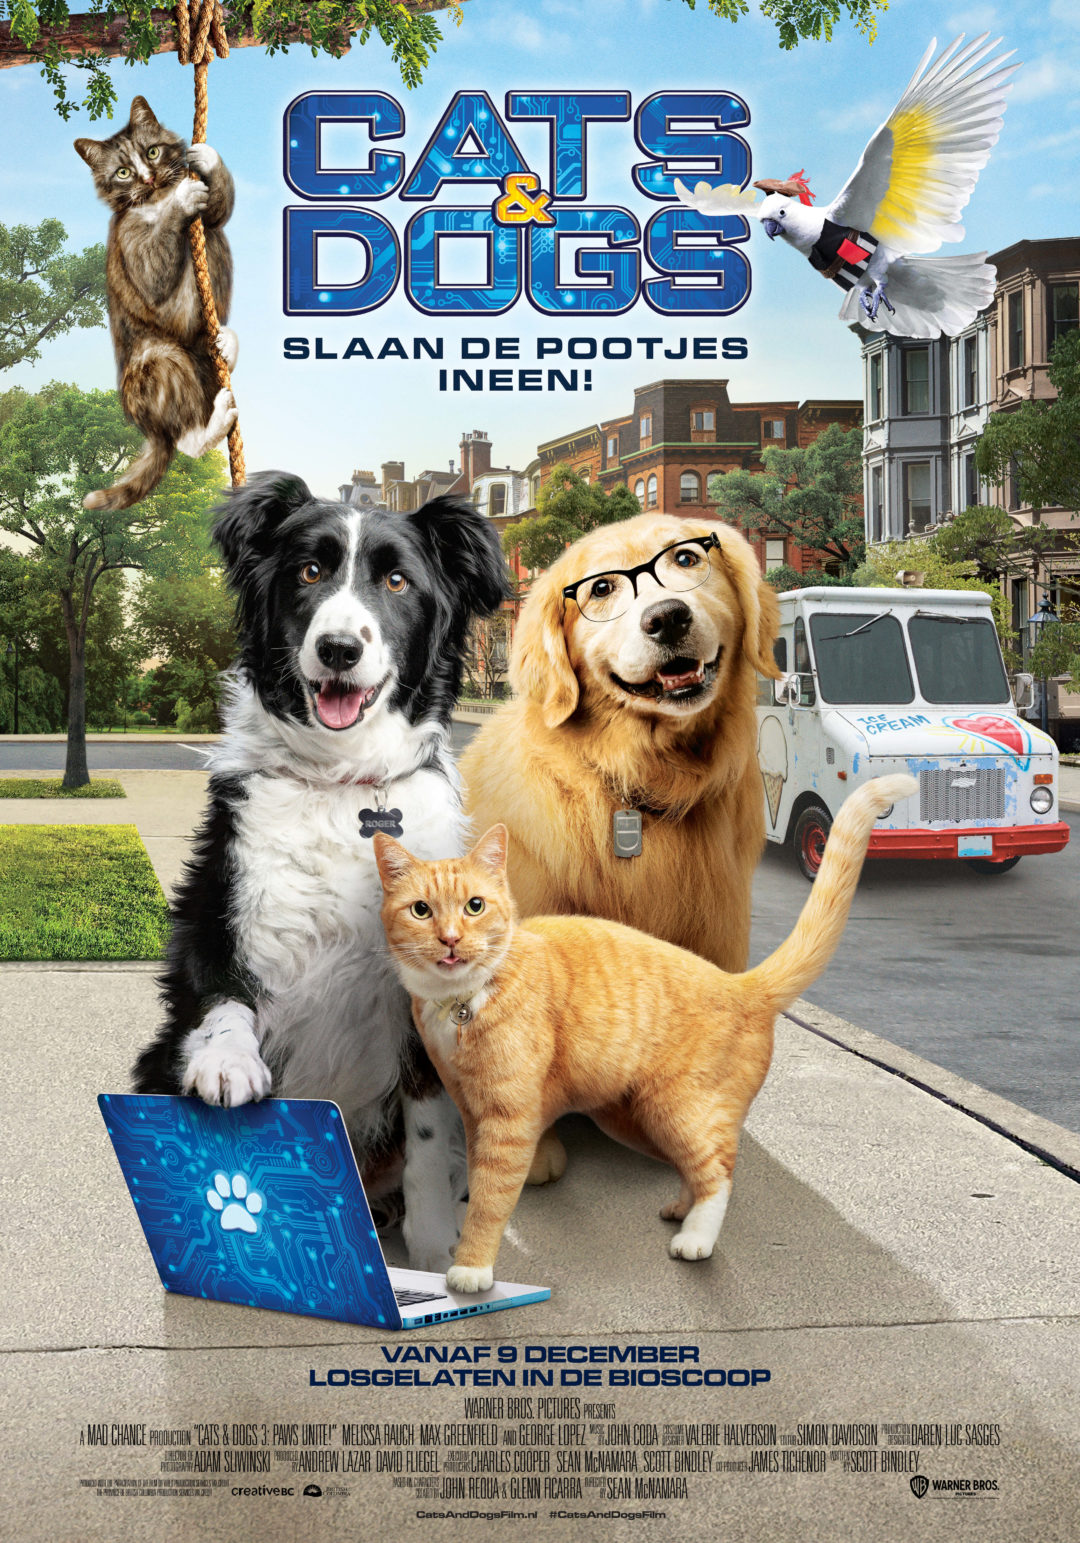 Cats-Dogs_-Slaan-de-Pootjes-Ineen-_ps_1_jpg_sd-high_Copyright-2020-Warner-Bros-Entertainment-Inc-All-Rights-Reserved.jpg